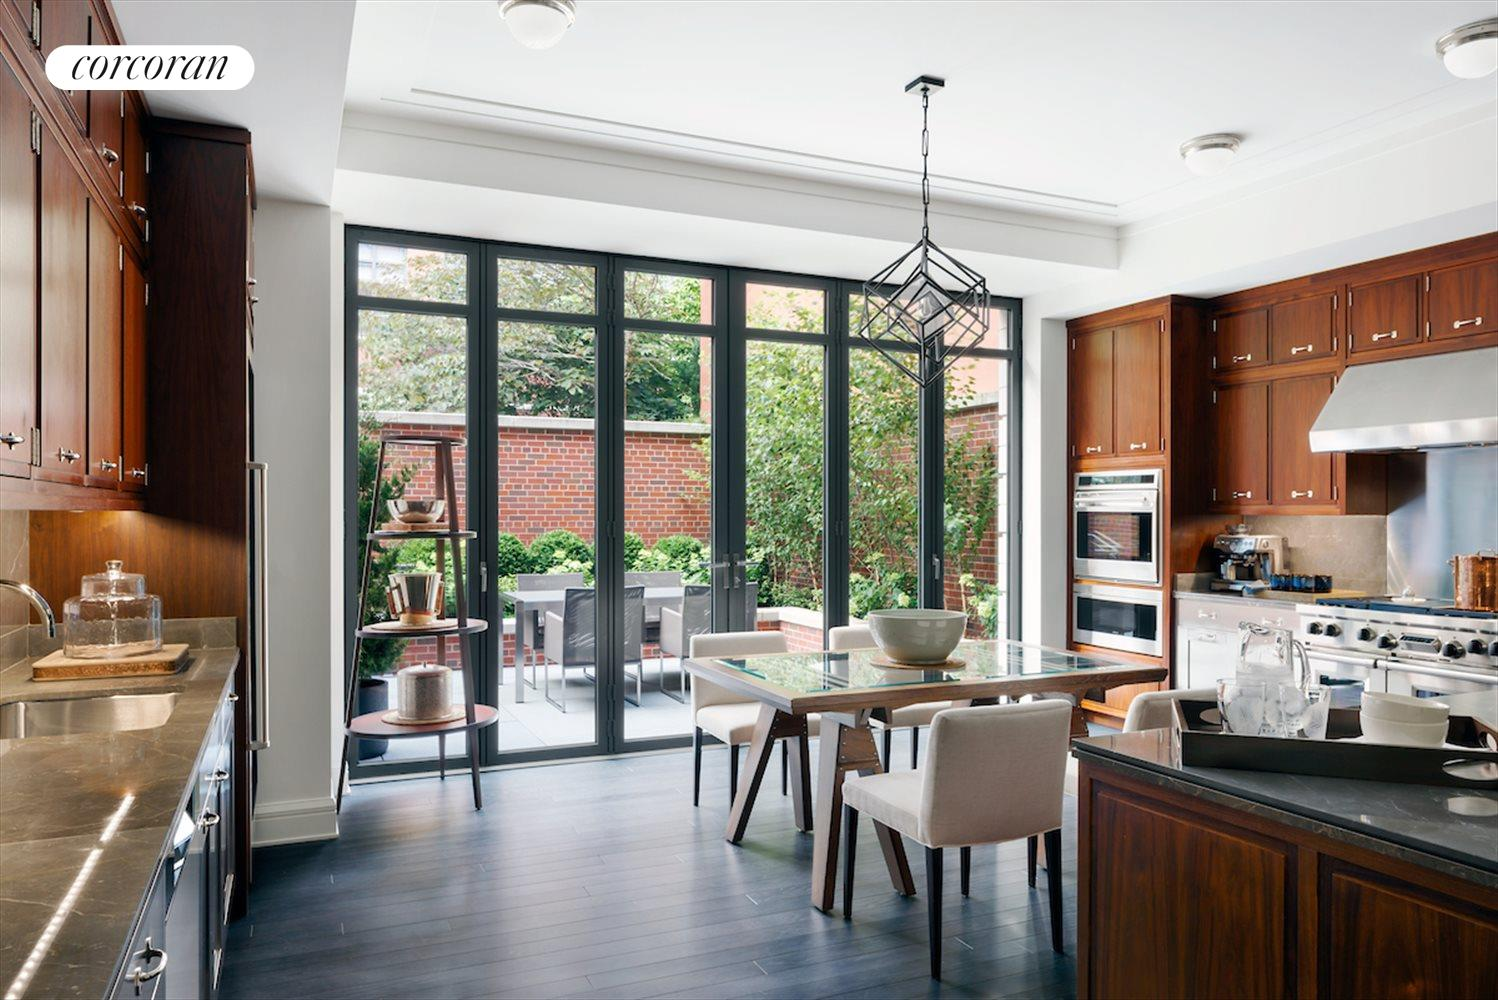 New York City Real Estate | View 141 West 11th Street | Chef's kitchen